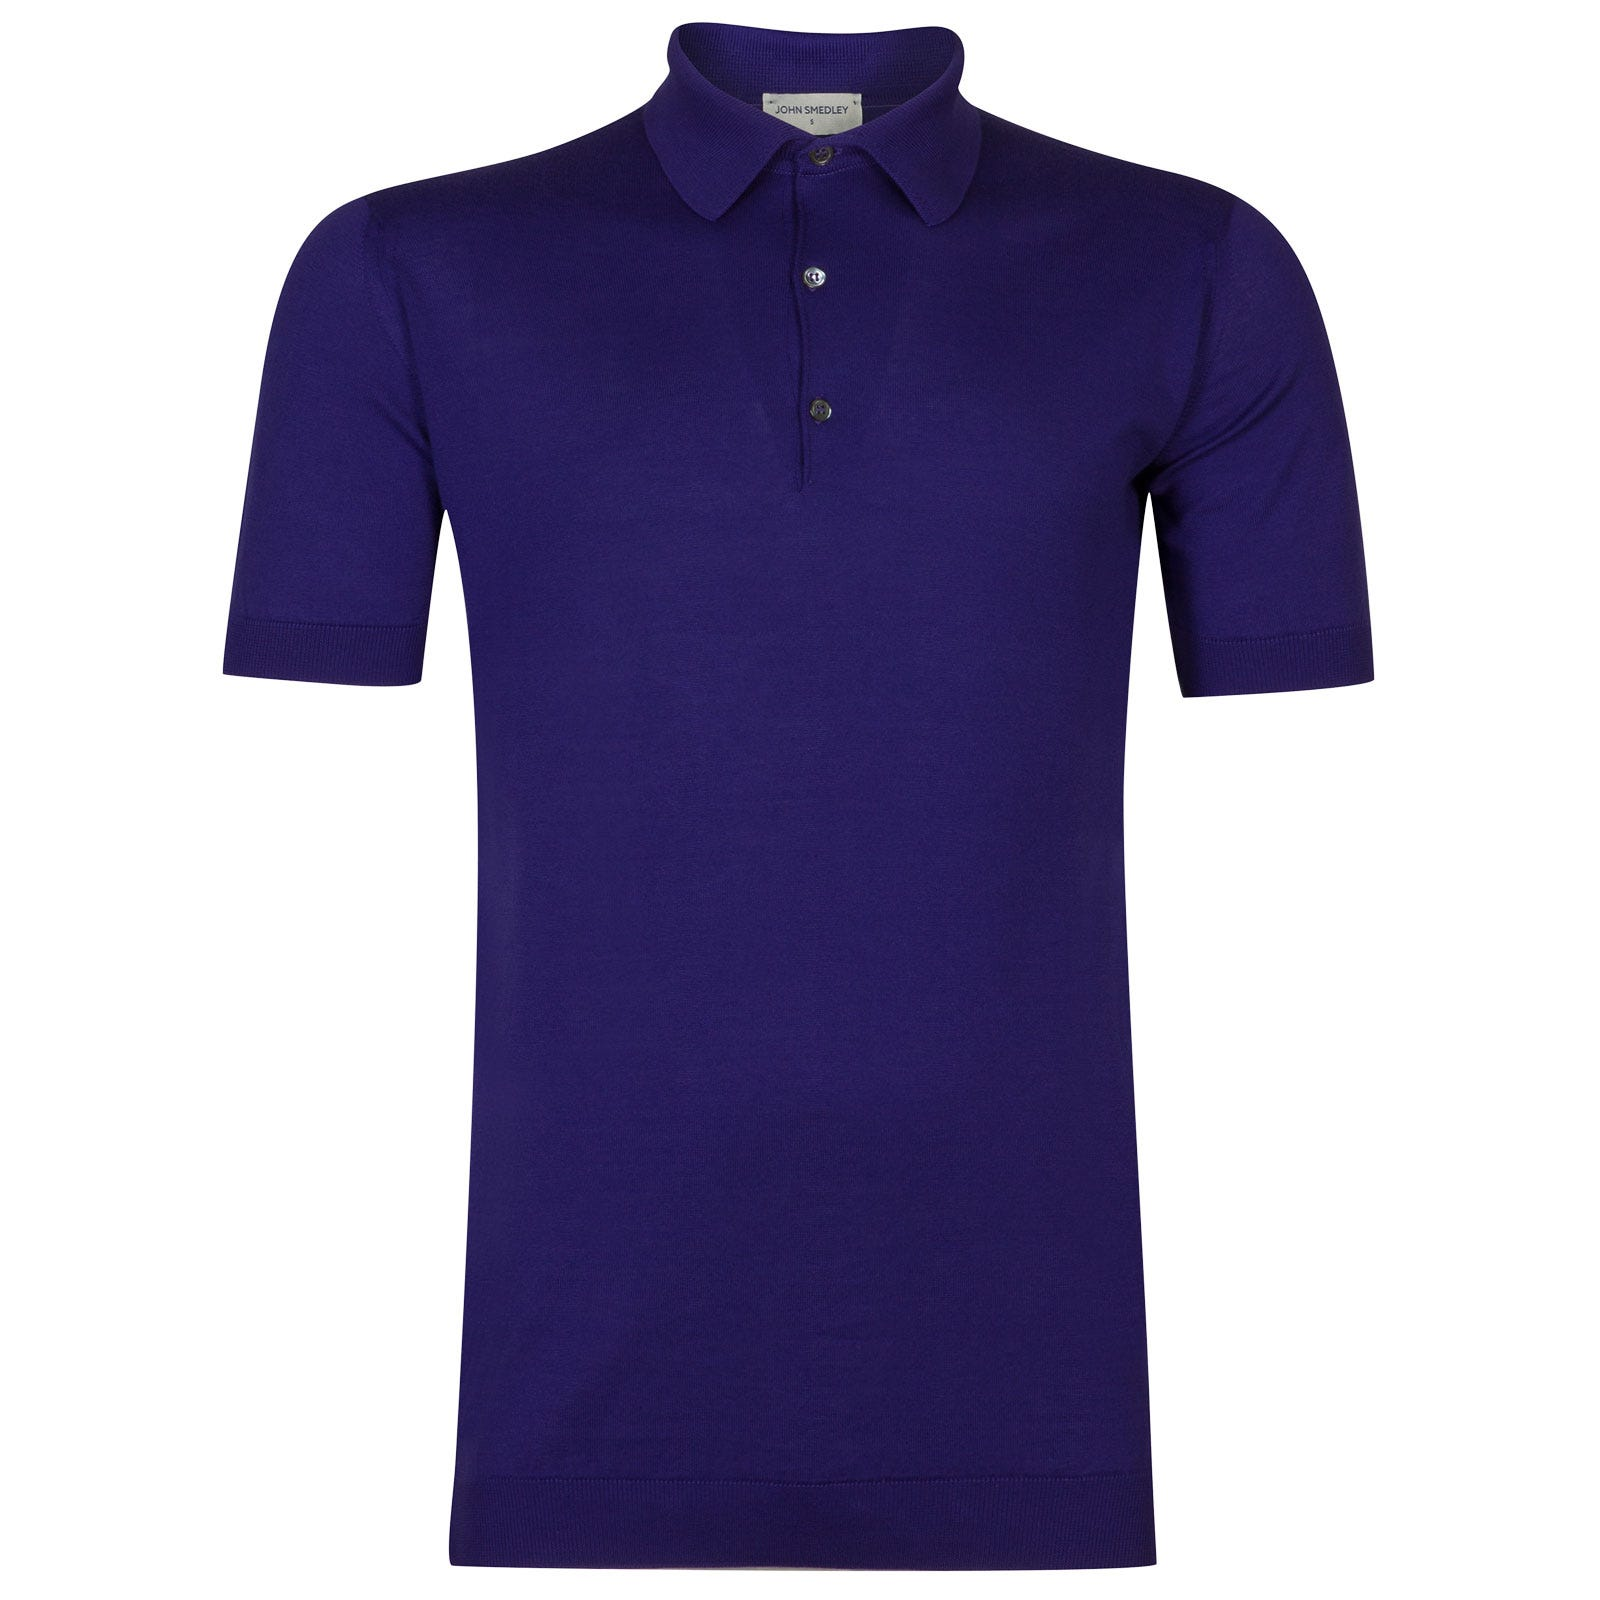 adrian-electric-purple-Xl